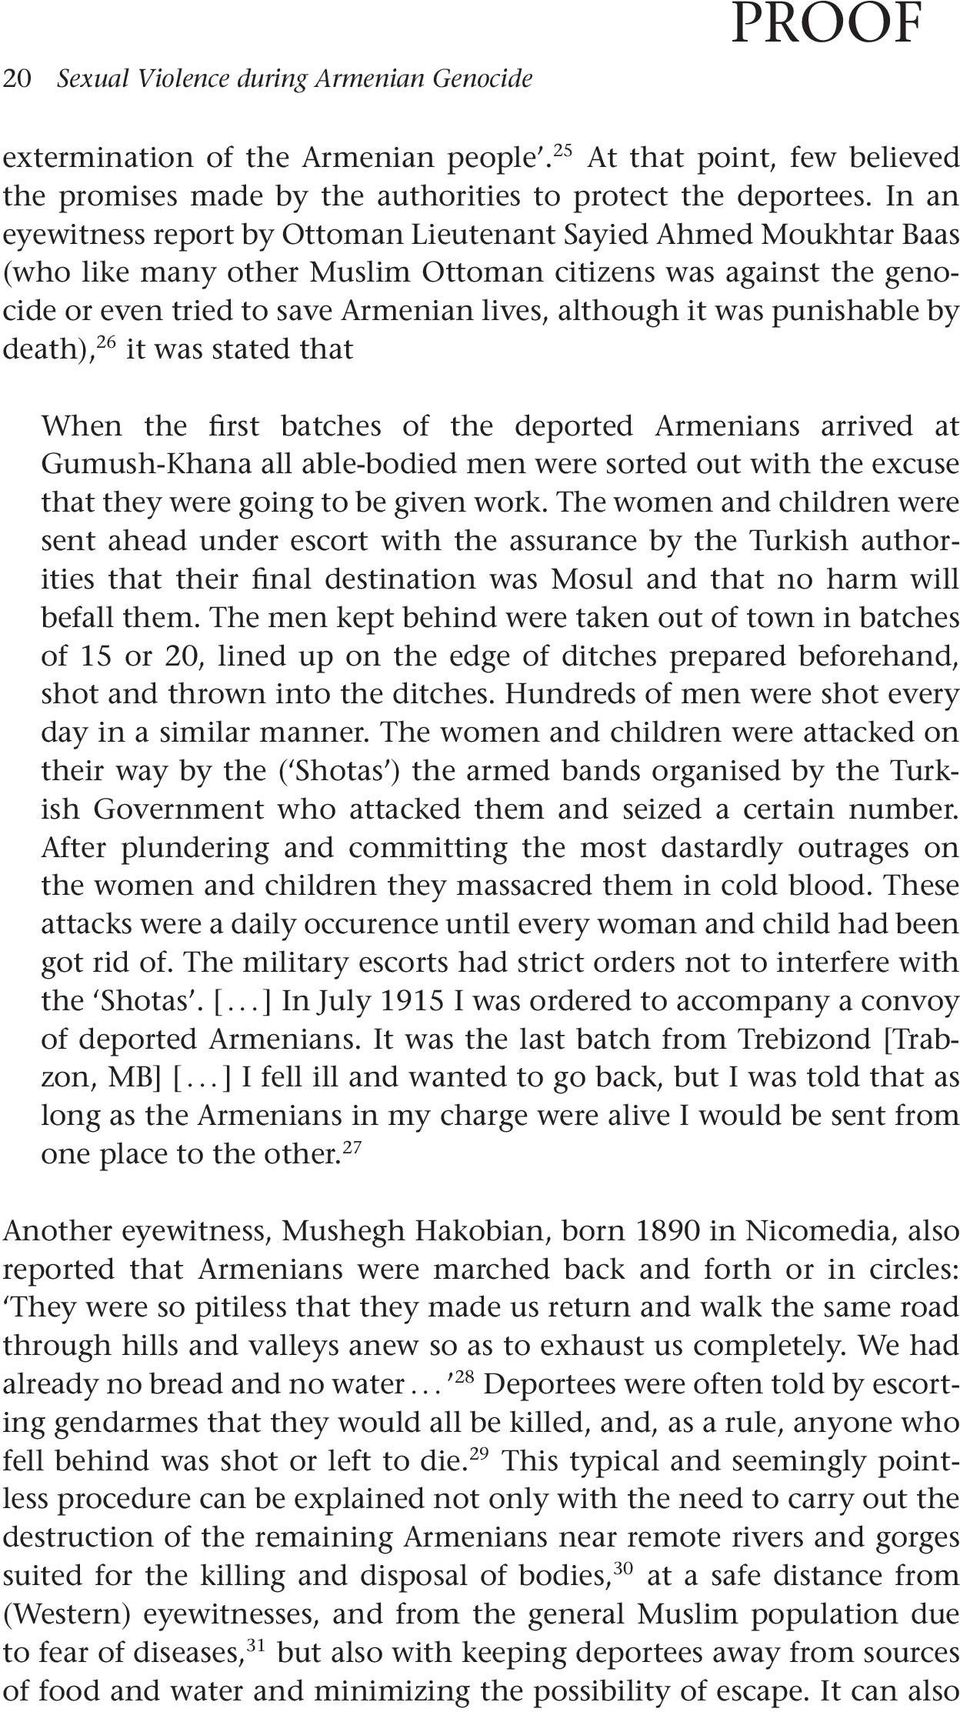 punishable by death), 26 it was stated that When the first batches of the deported Armenians arrived at Gumush-Khana all able-bodied men were sorted out with the excuse that they were going to be